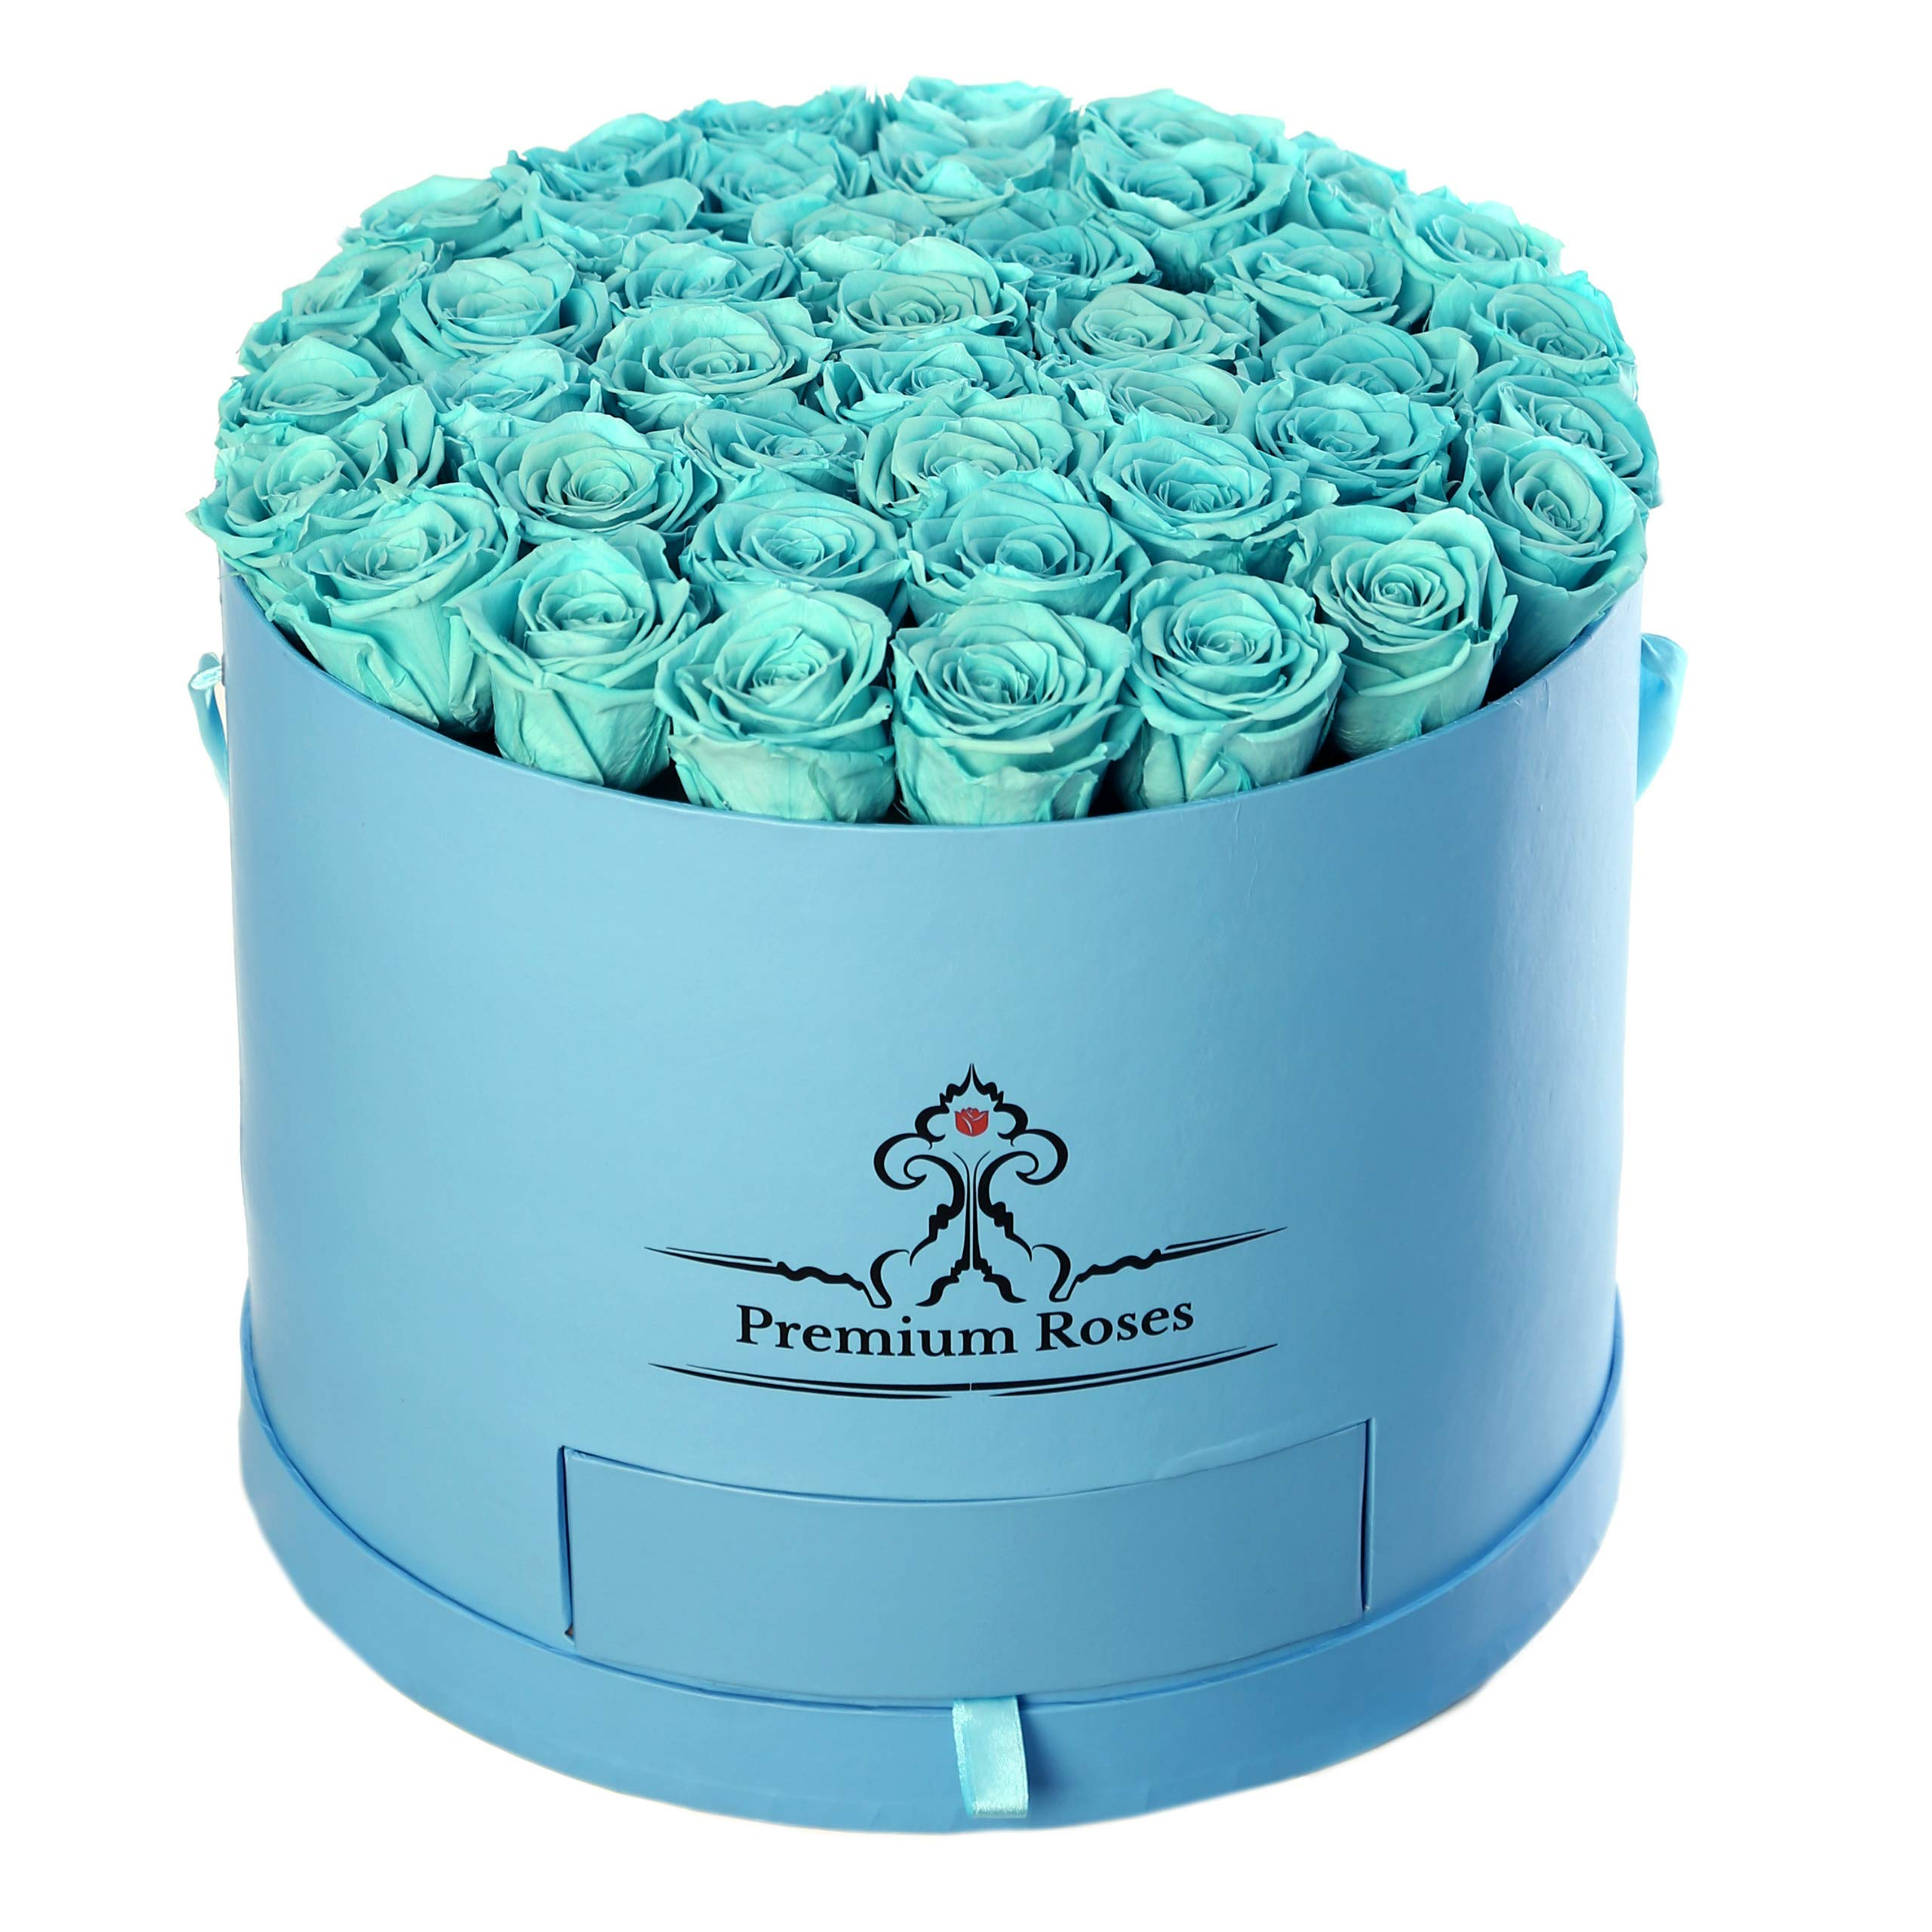 Premium Roses| Real Roses That Last a Year | Fresh Flowers| Roses in a Box (Blue Box, Large) by Premium Roses